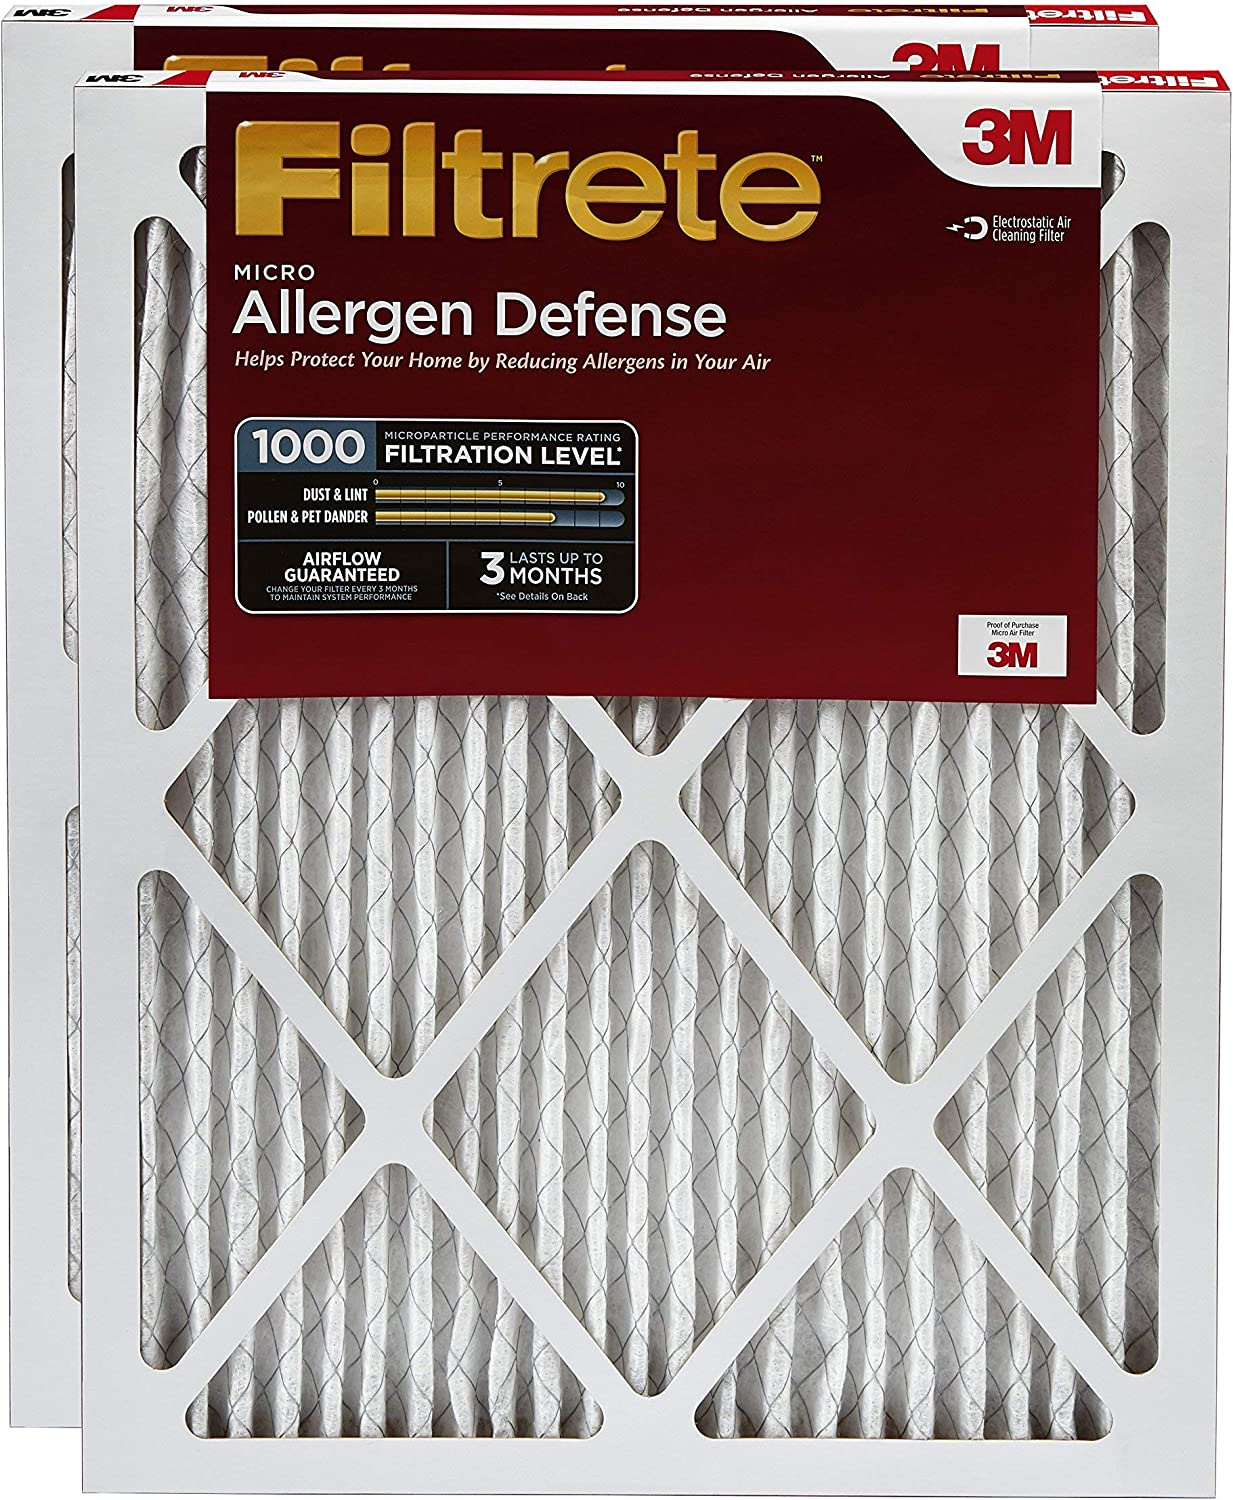 Filtrete 16x20x1, AC Furnace Air Filter, MPR 1000, Micro Allergen Defence, 2-Pack (Renewed)